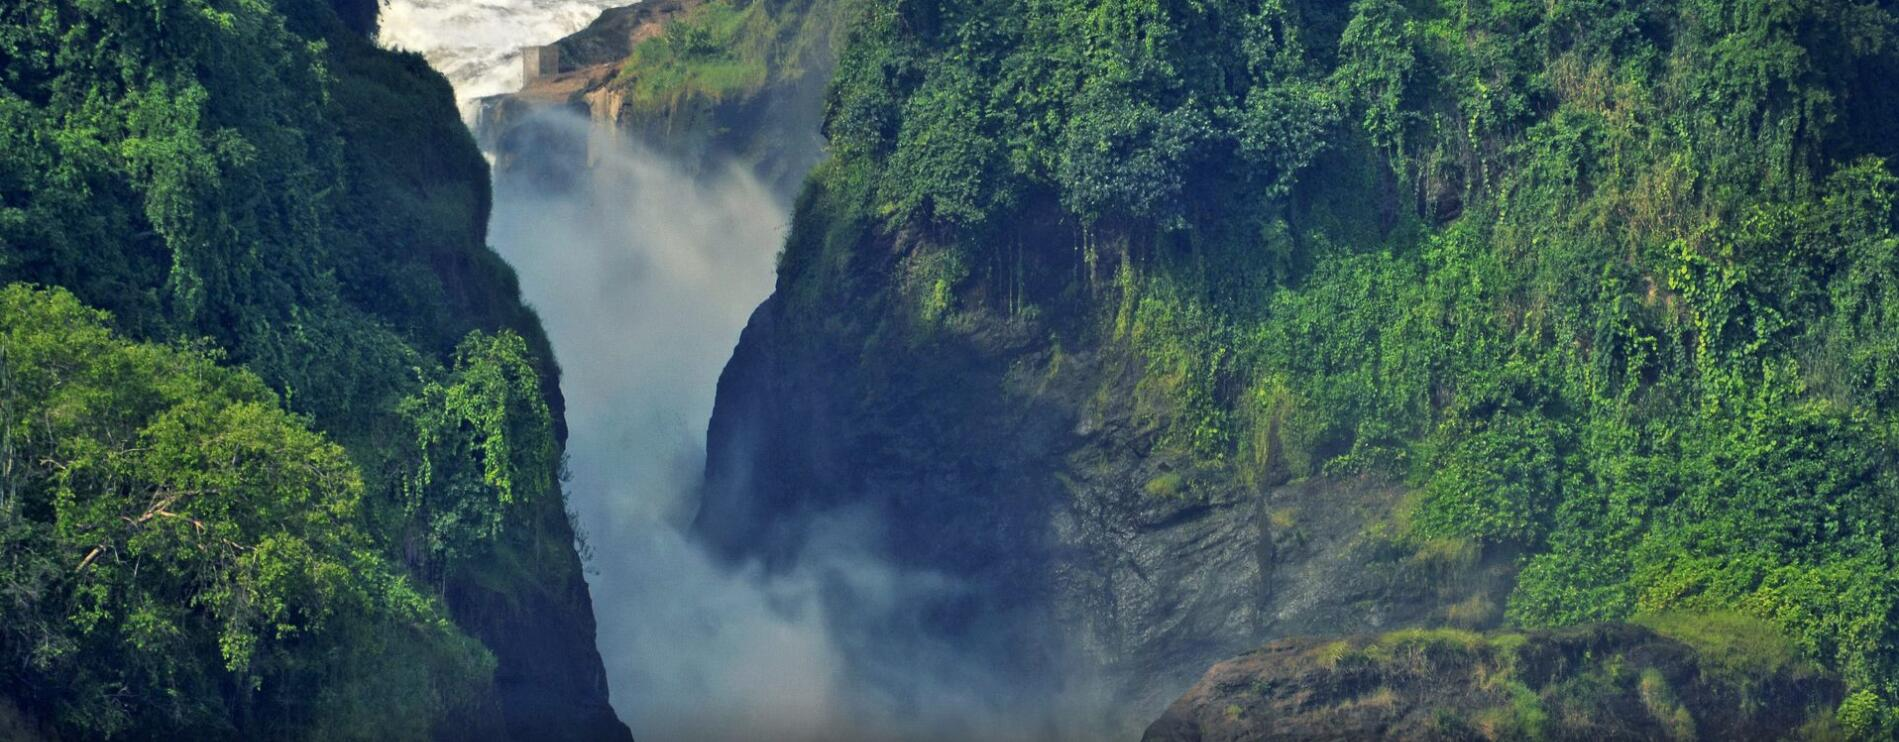 MURCHISON FALLS ADD-ON PACKAGE